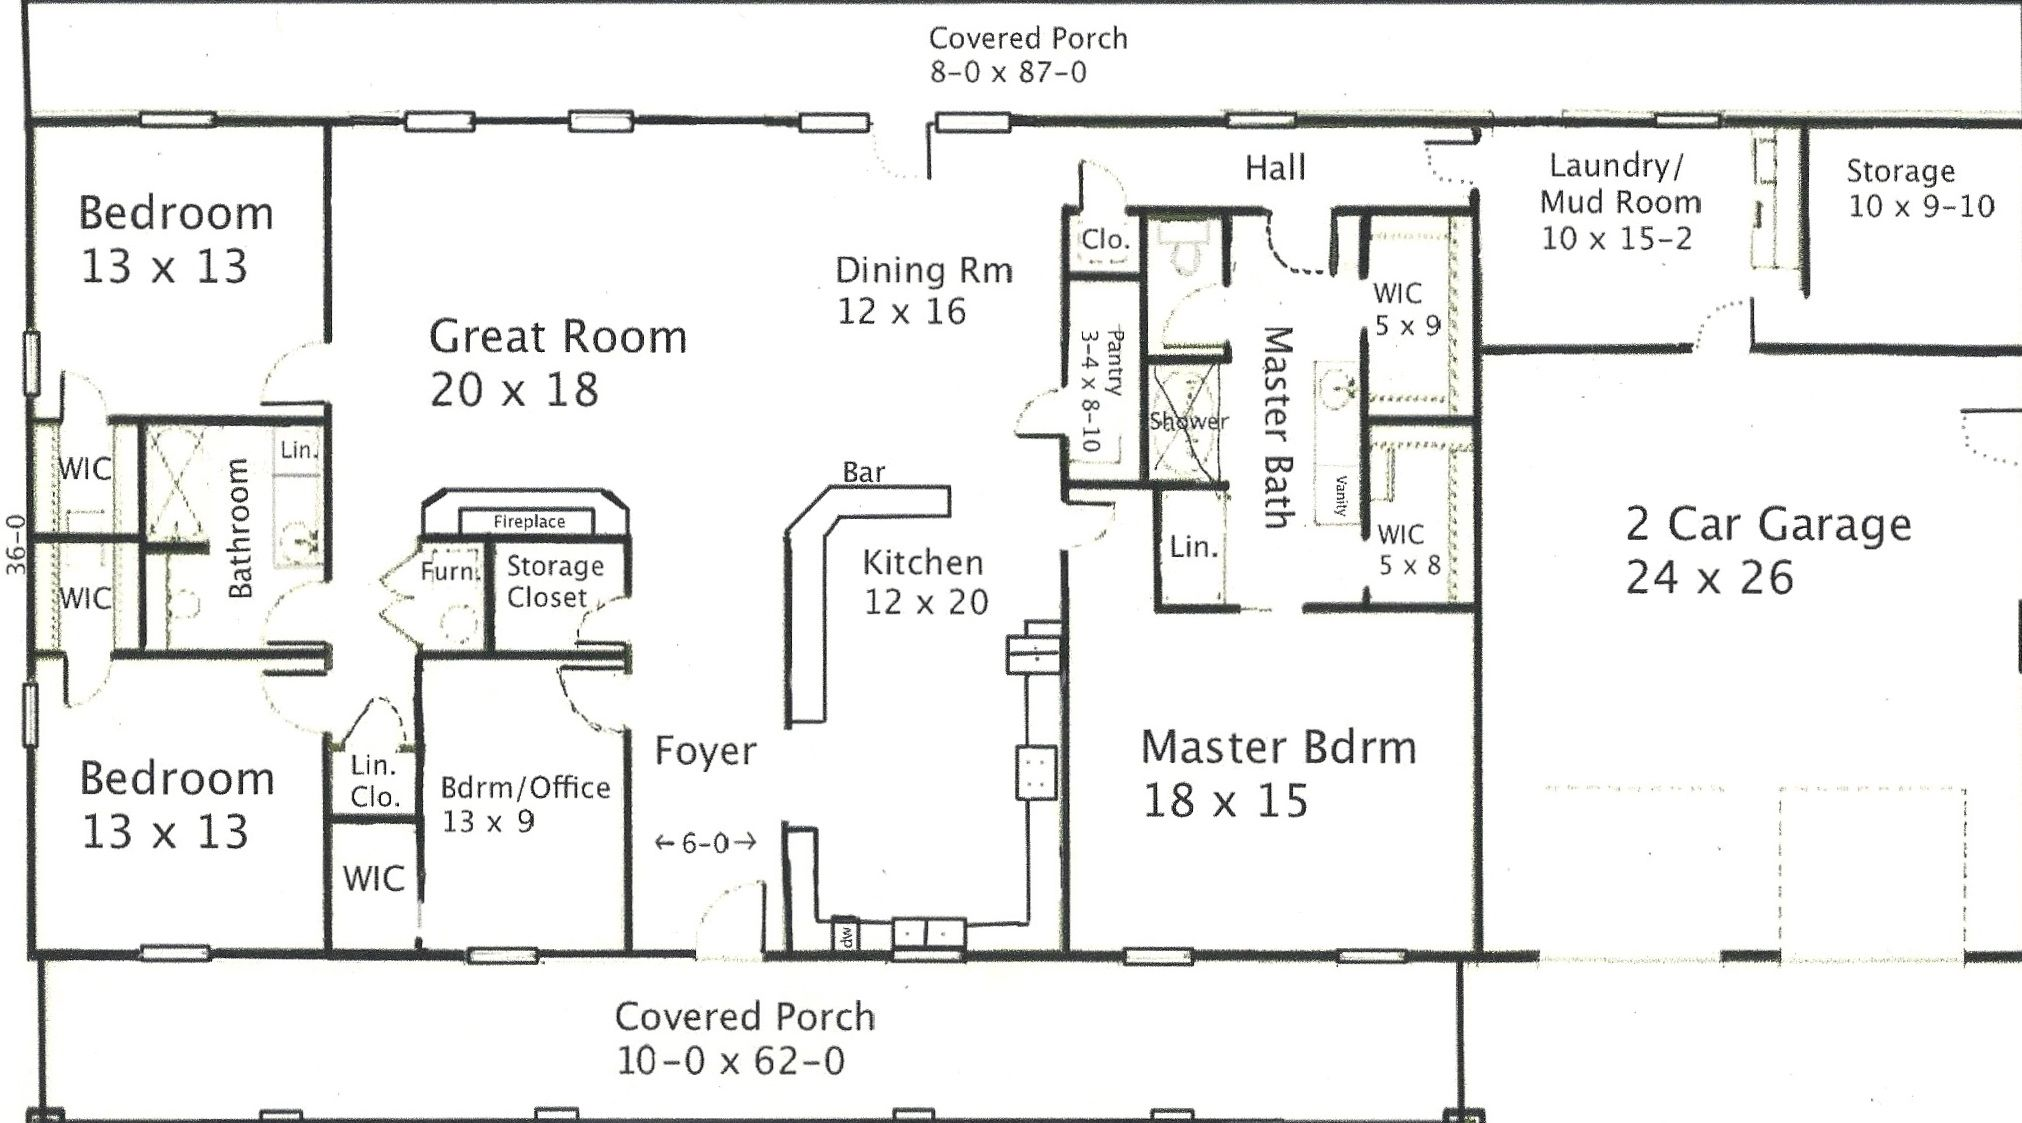 House design 40 x 80 - Like This Floor Plan Exciting Barndominium Floor Plans For Inspiring Your Home Ideas Interesting Barndominium Floor Plans For Traditional Home Design